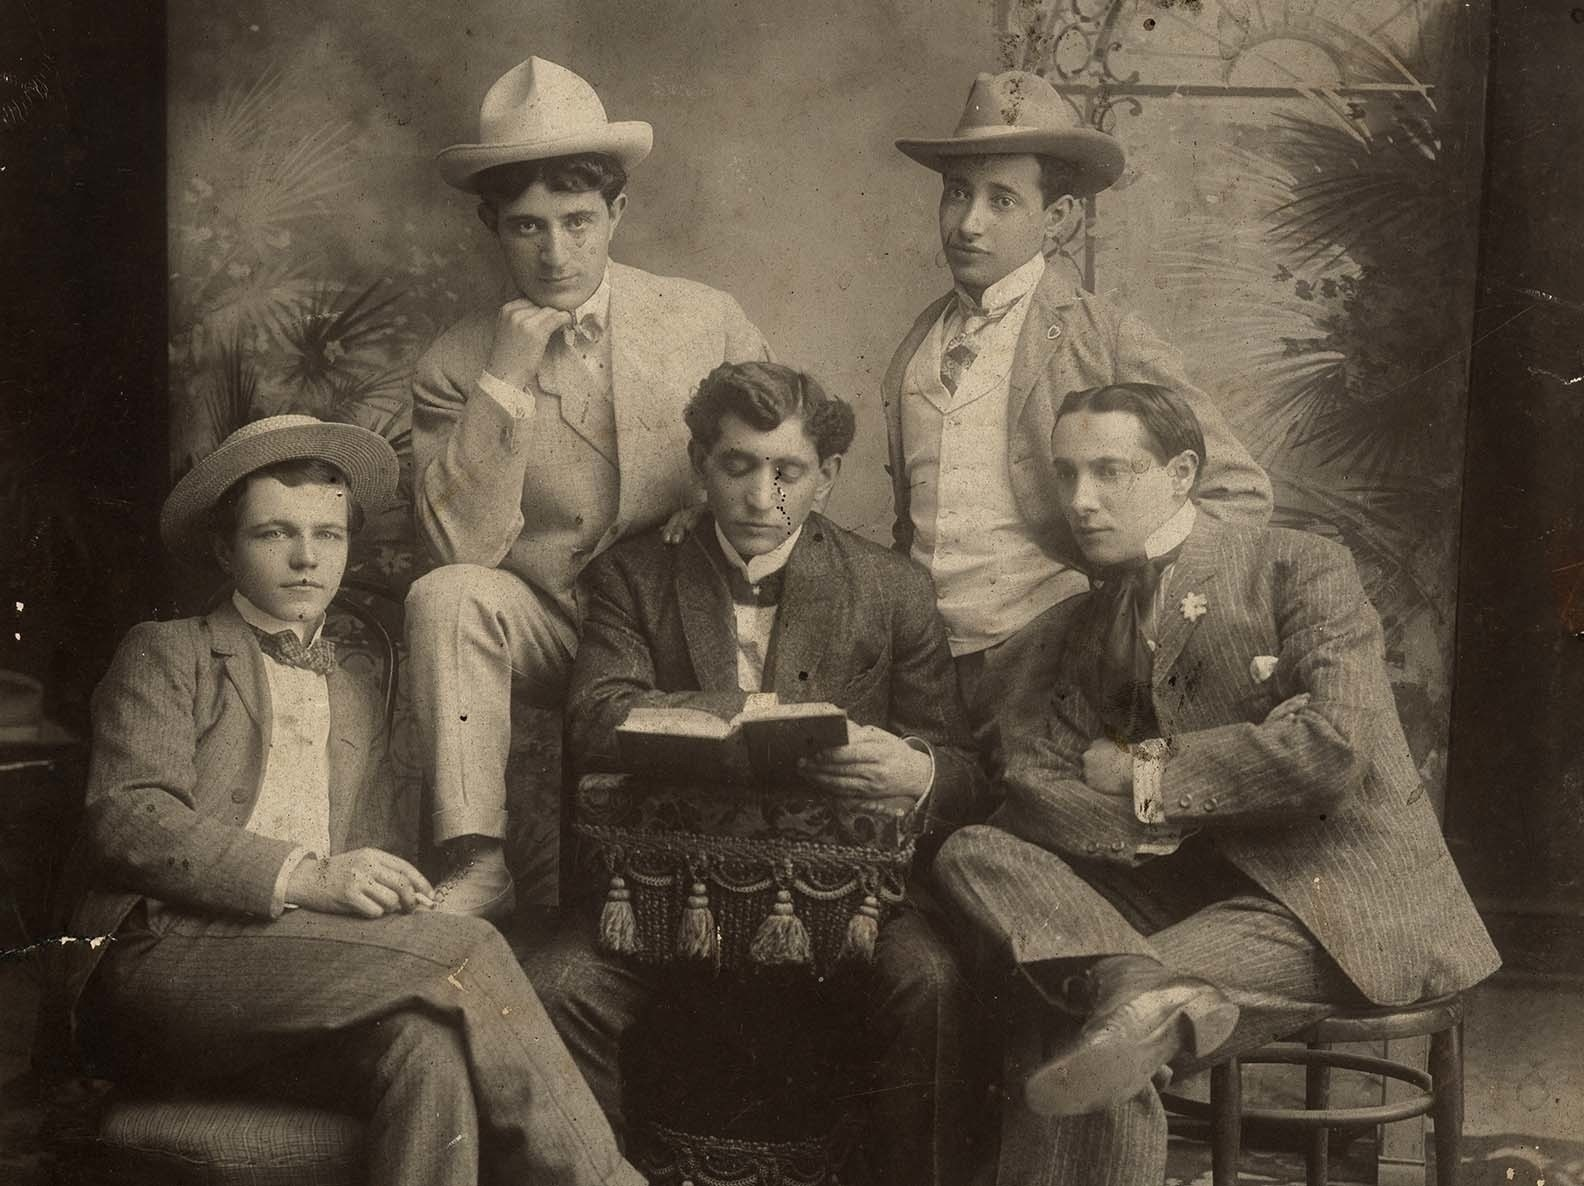 Jacob Barinescu seated in a row of three adults with two more standing behind, all in various poses dressed in suits and finery